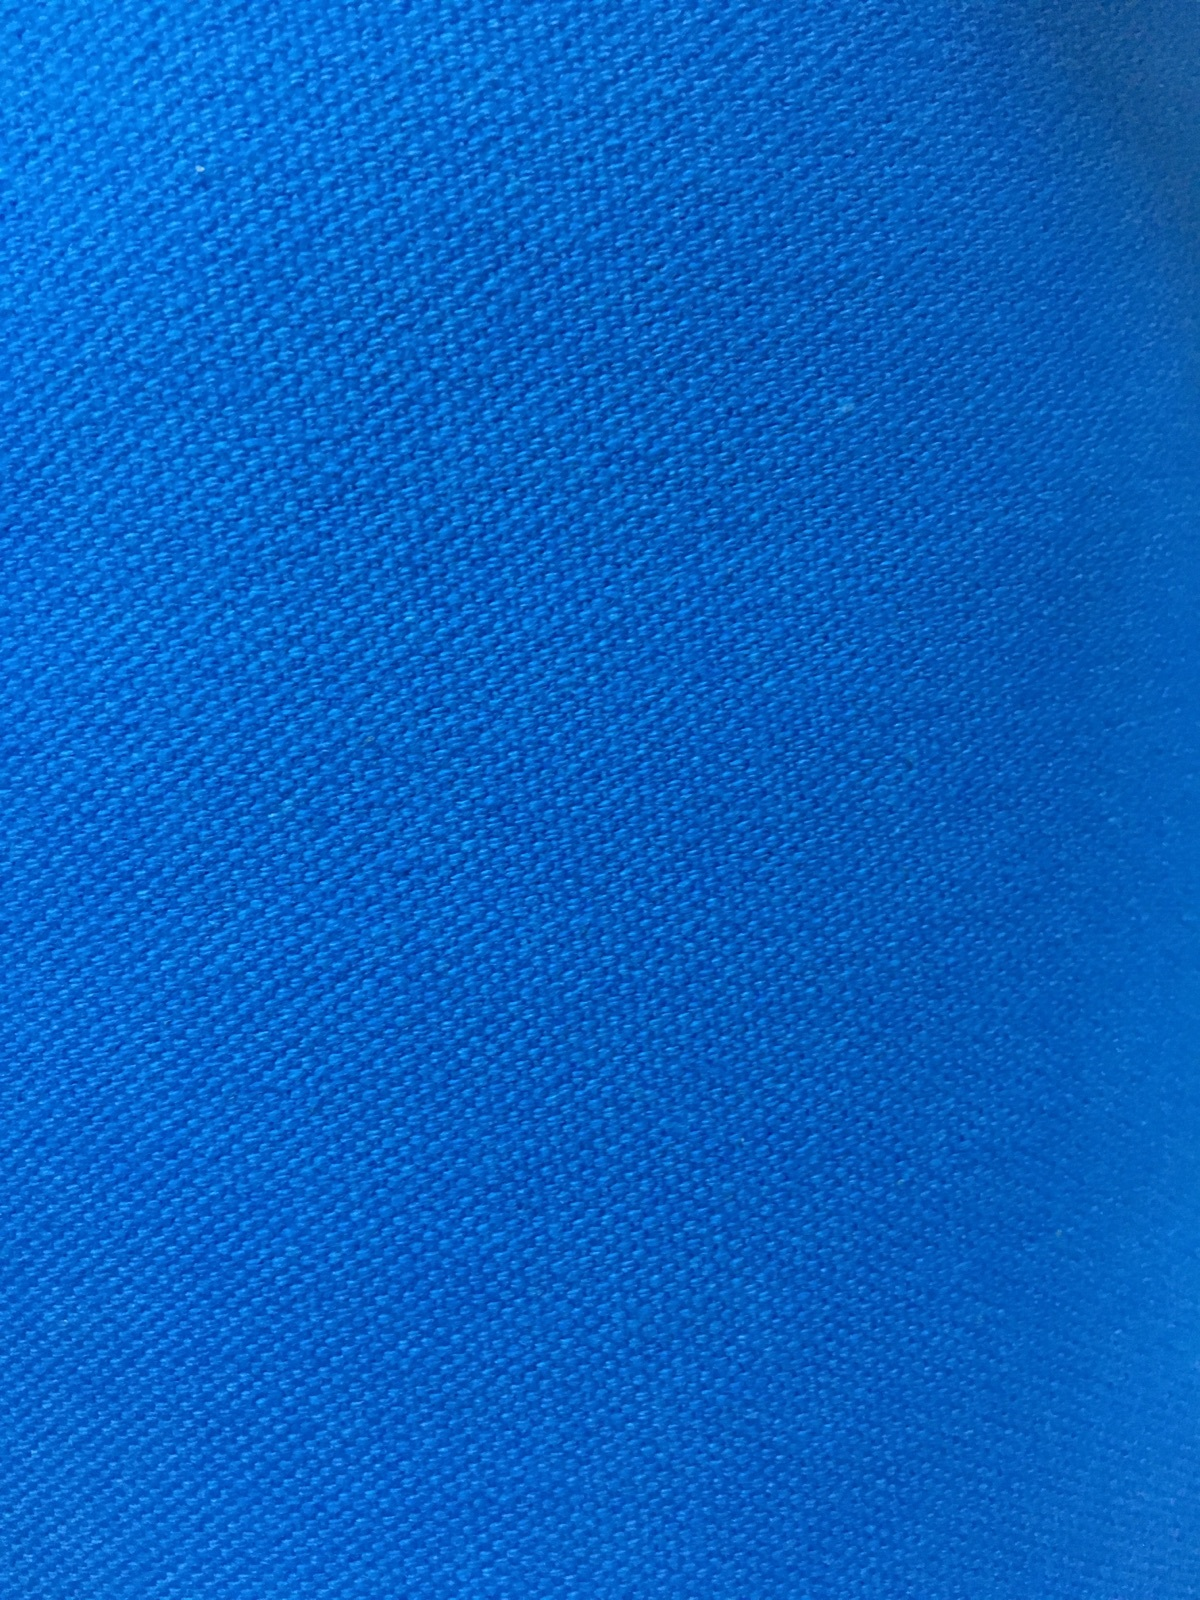 "57/60"" Blue Duck Cloth 9-10oz Per Yard"